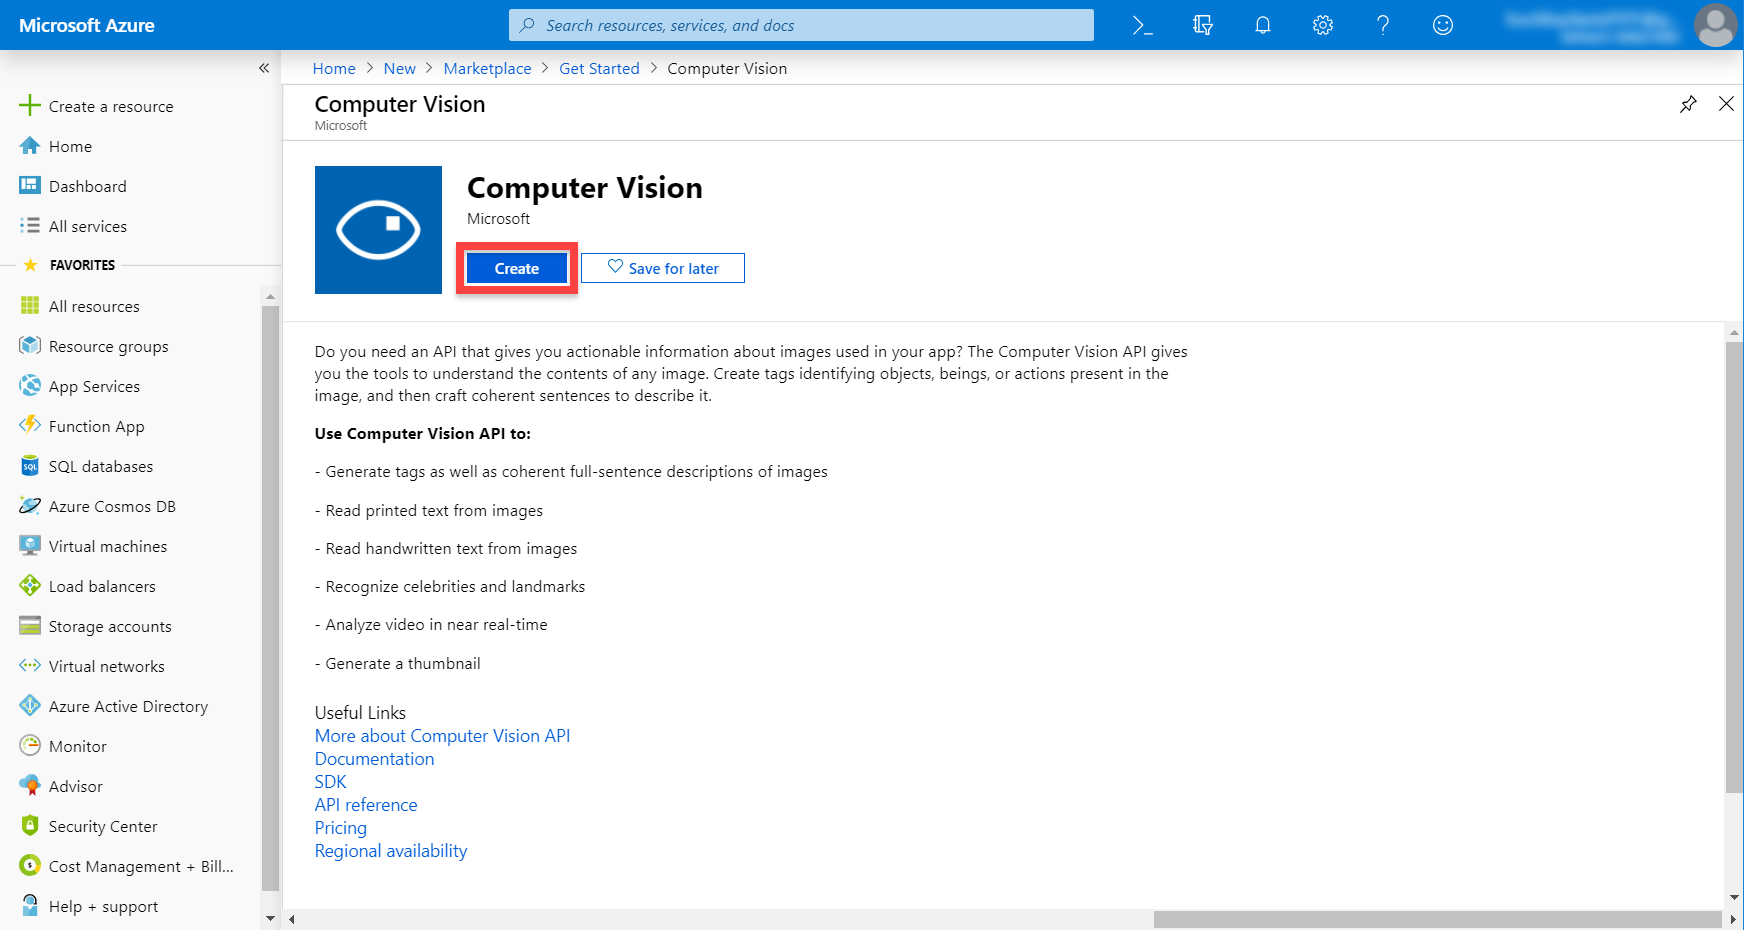 Microsoft Azure service page for Computer Vision